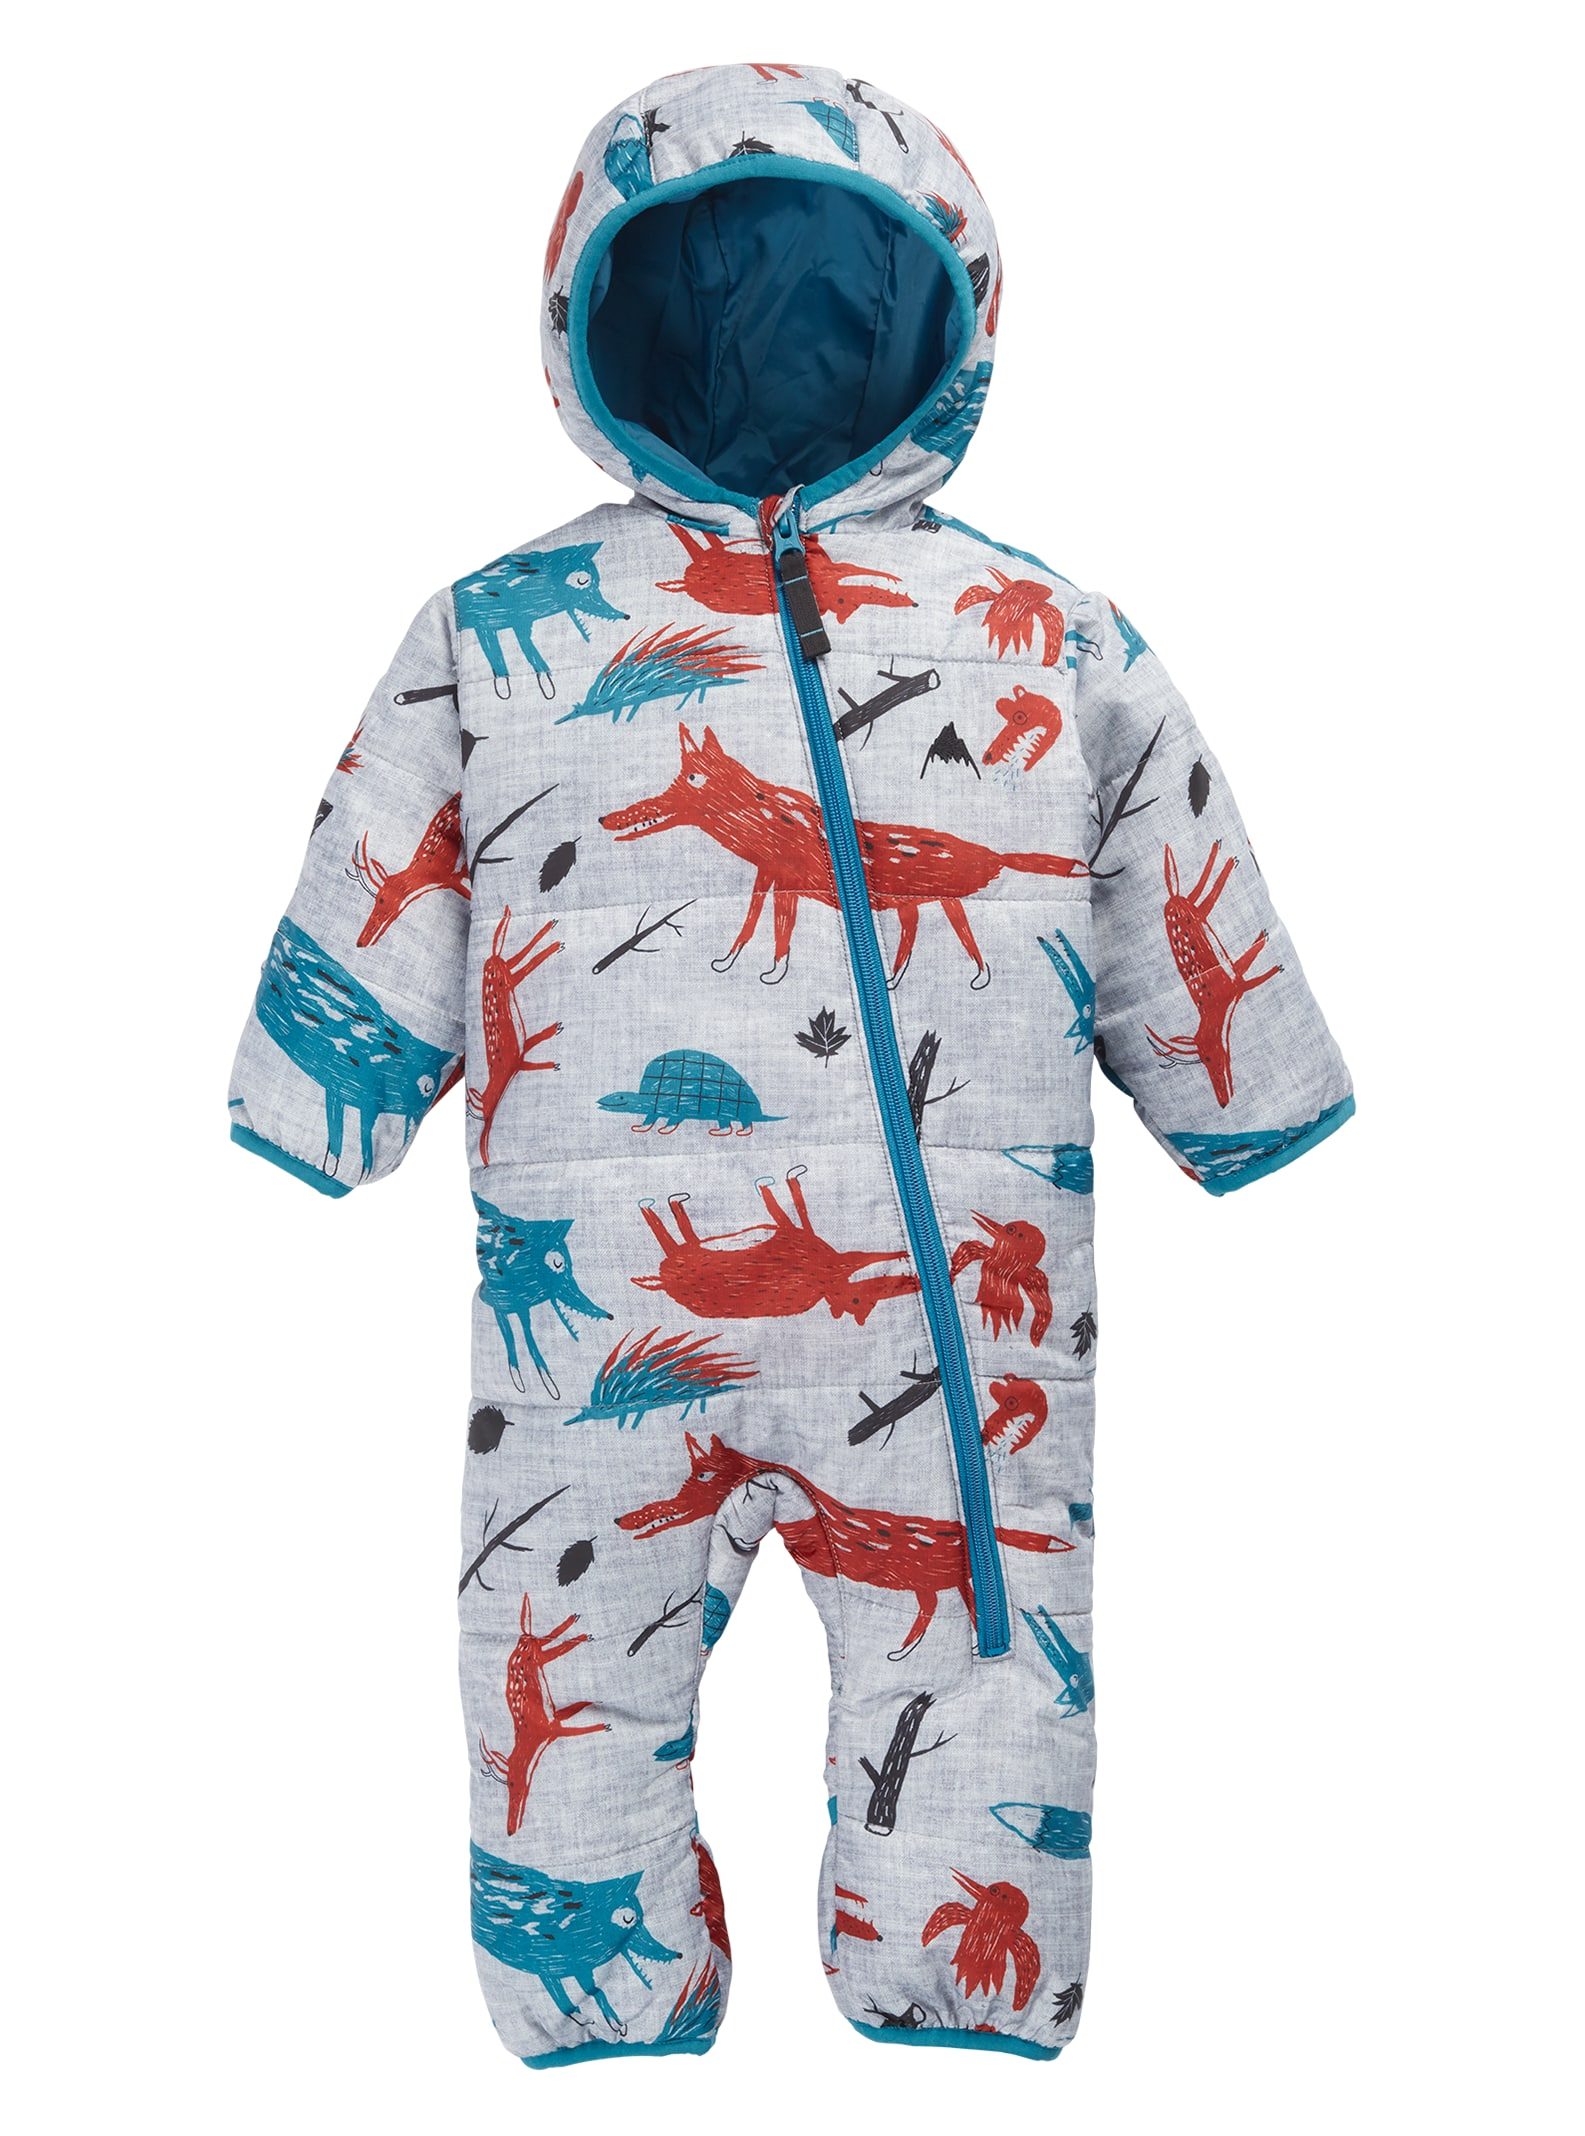 440029a89 Kids  Minishred Infant Buddy Bunting Suit